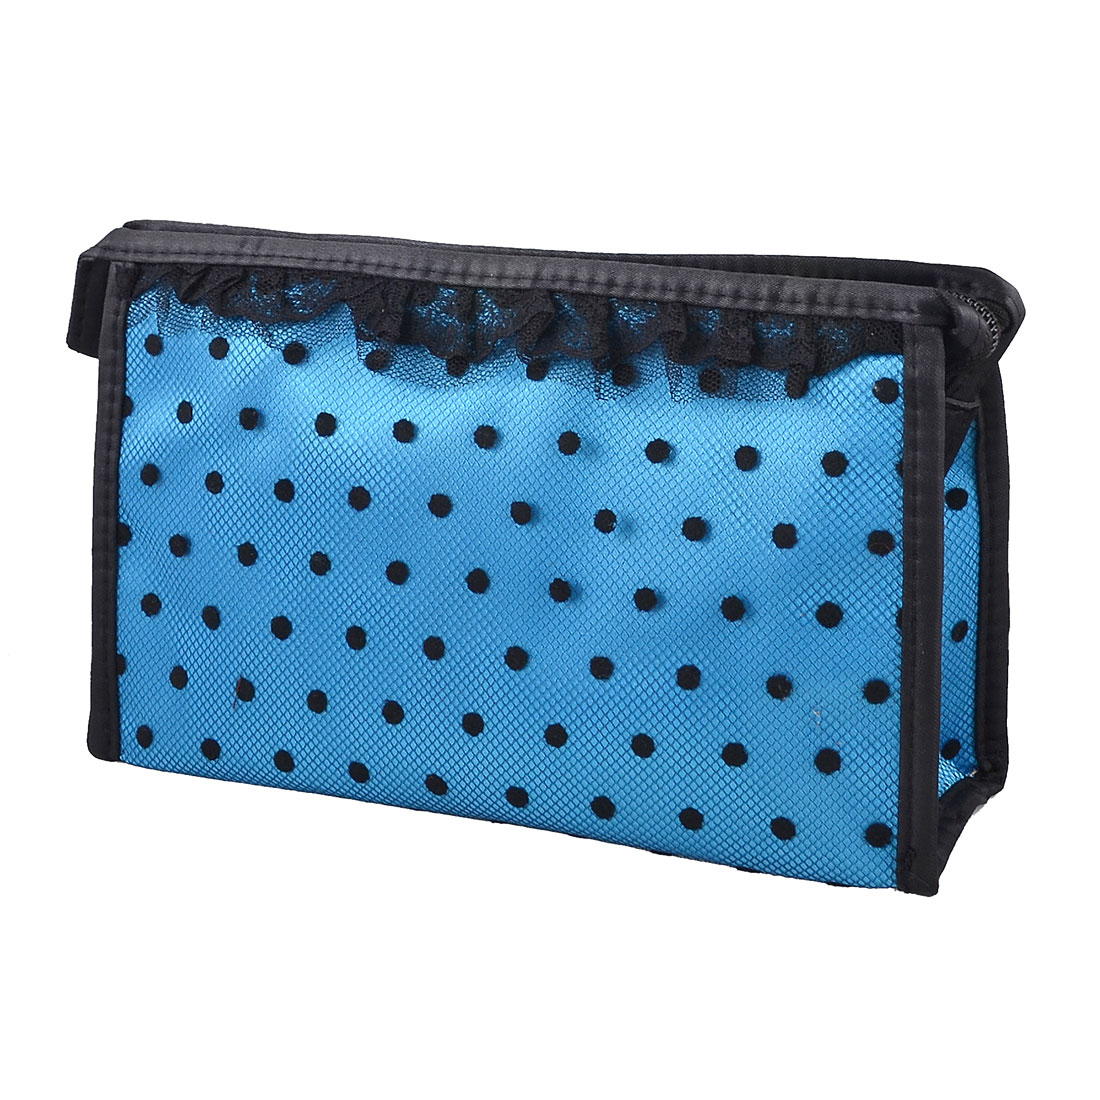 Lady Zip up Blue Black Dotted Lace Meshy Makeup Cosmetic Bag Organizer Holder